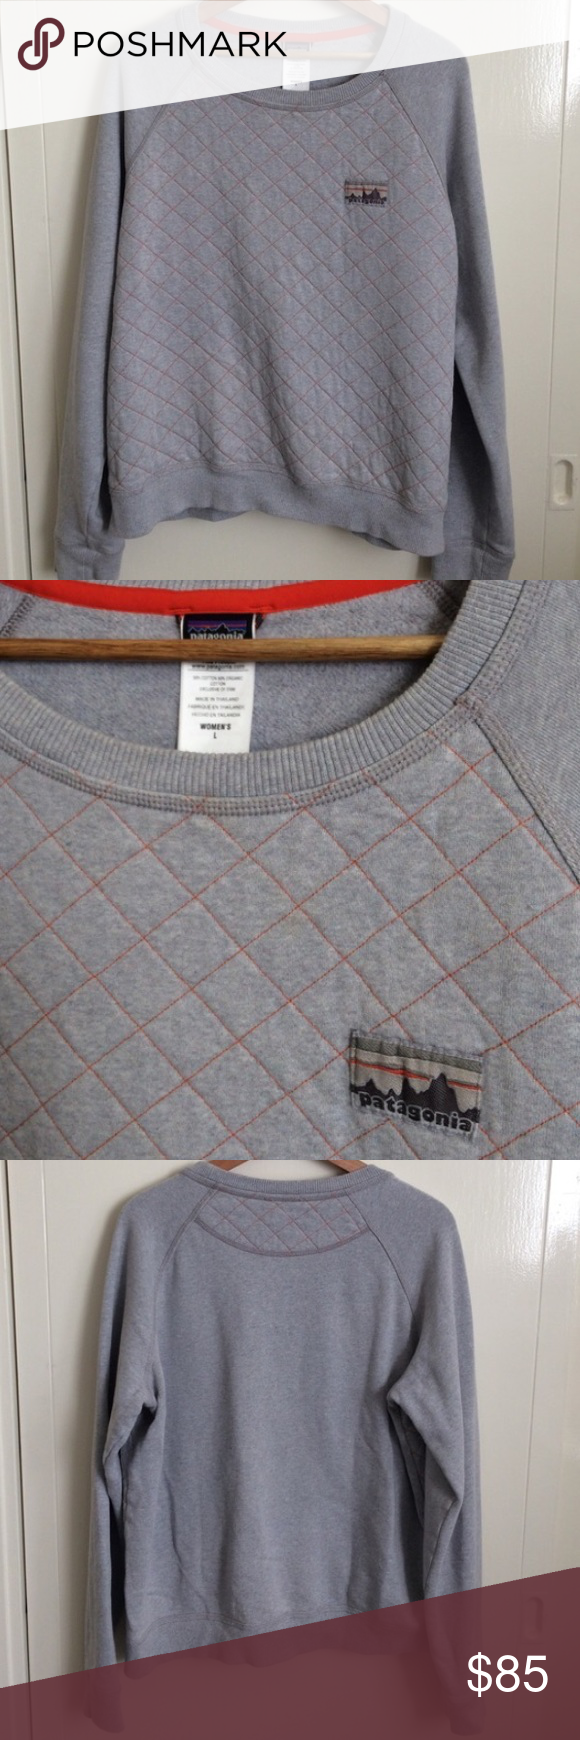 Patagonia Crew Quilted Sweater Quilted grey cotton material and orange thread detail. Patagonia logo on the chest. Cool detail on the back. Size large sweatshirt. Excellent condition. Is available! Patagonia Sweaters Crew & Scoop Necks